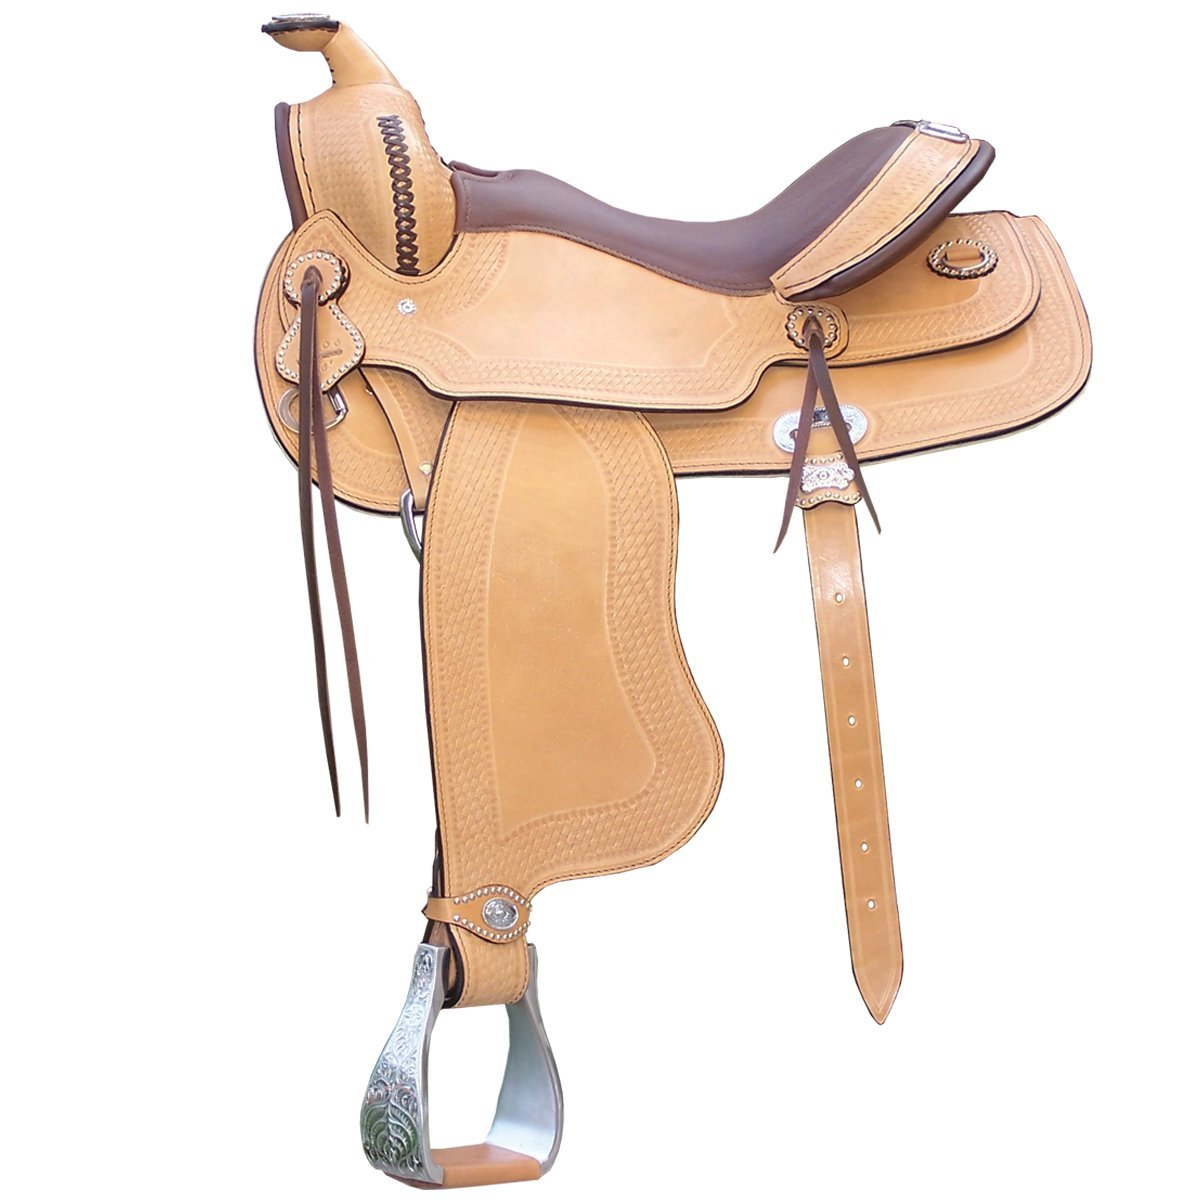 Argy`s Art Psatha Arabian Gullet Western Saddle - Natural, 15.5-Inch